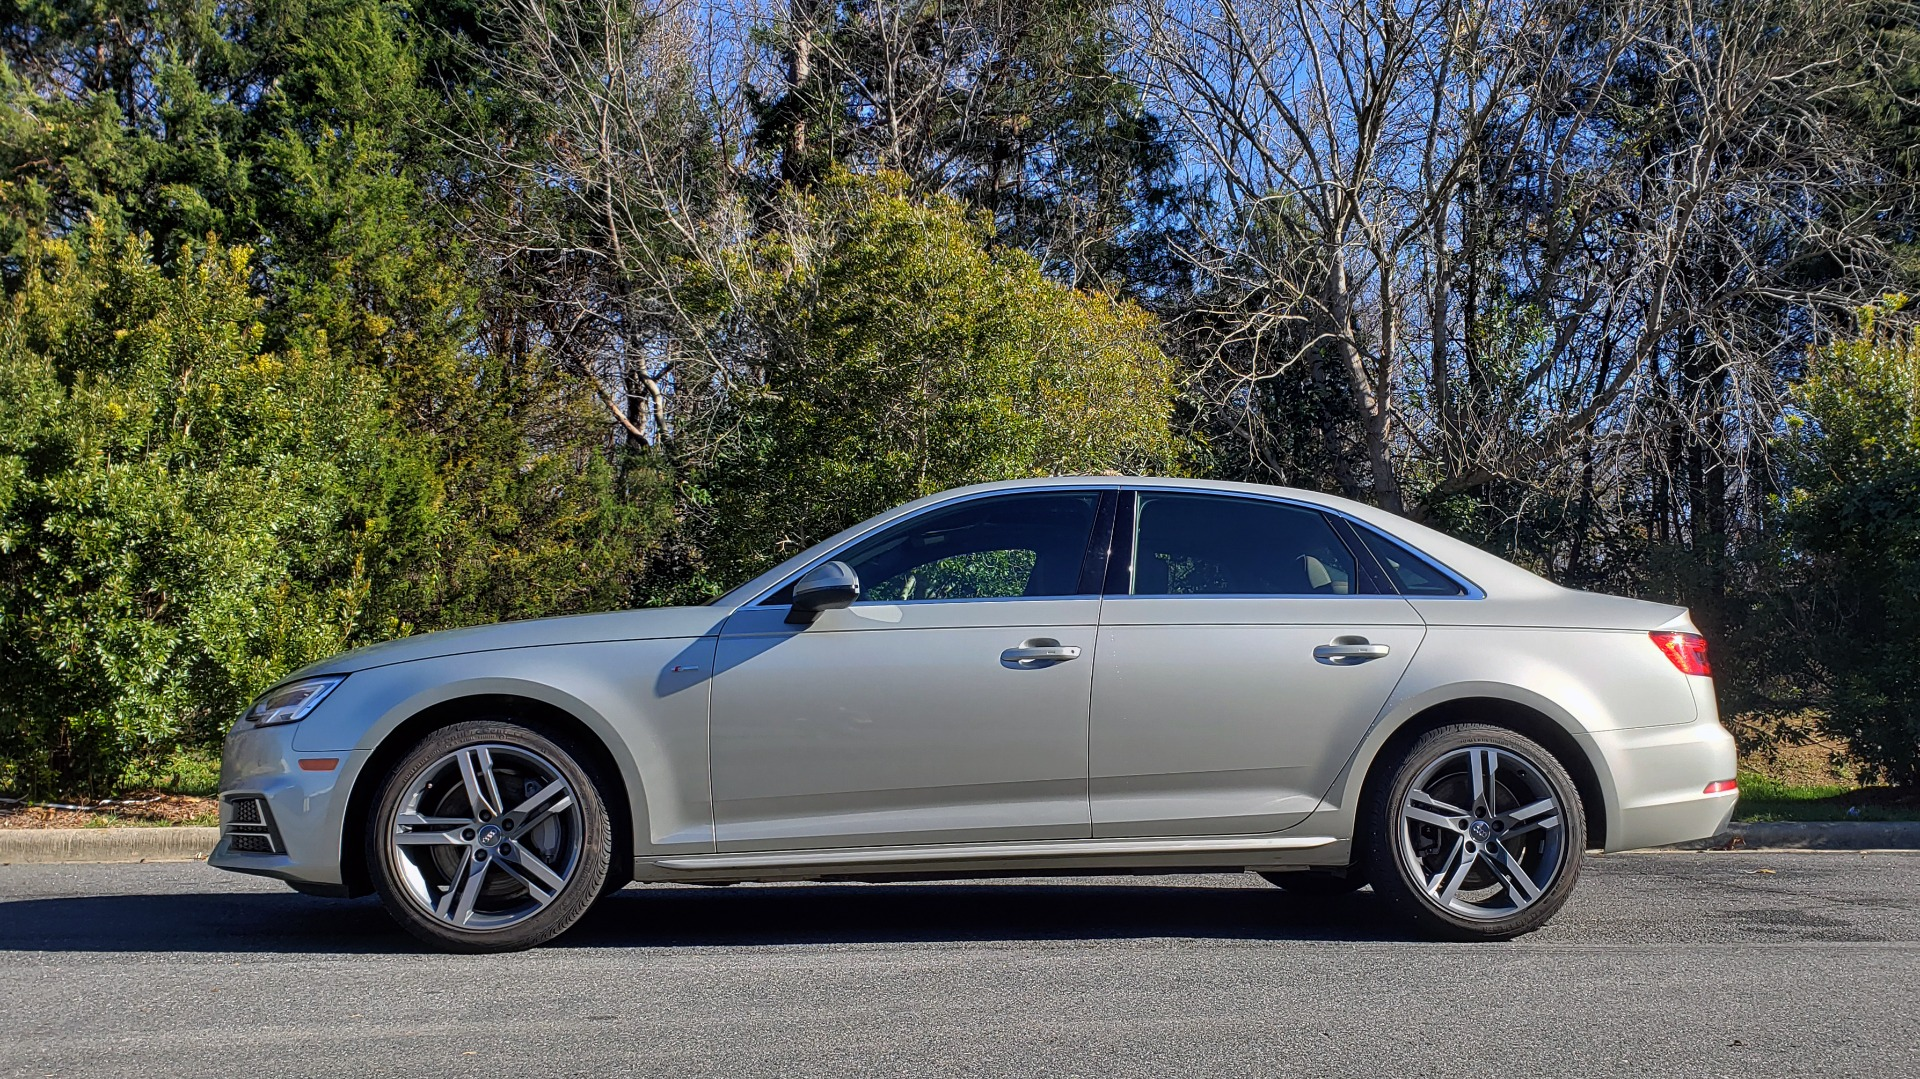 Used 2017 Audi A4 PREMIUM PLUS / TECH PKG / B&O SND / S-LINE / NAV / REARVIEW for sale $24,995 at Formula Imports in Charlotte NC 28227 2